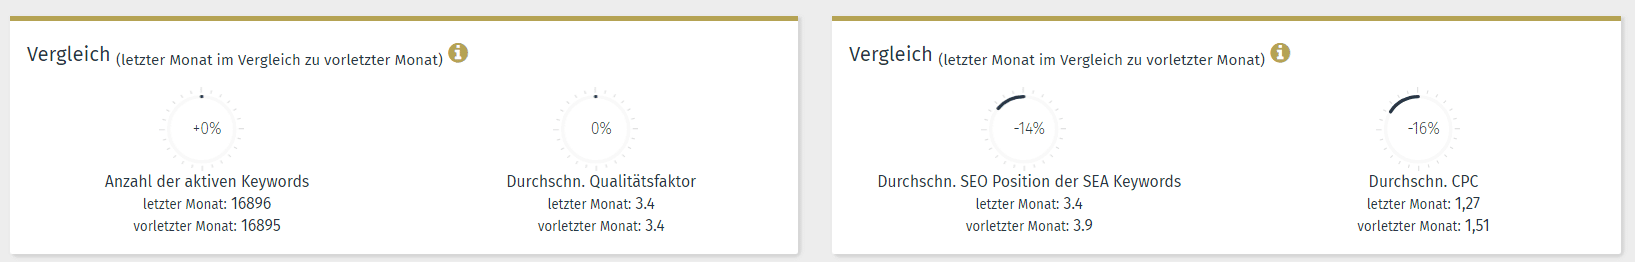 SEA Keywords Auswertungen